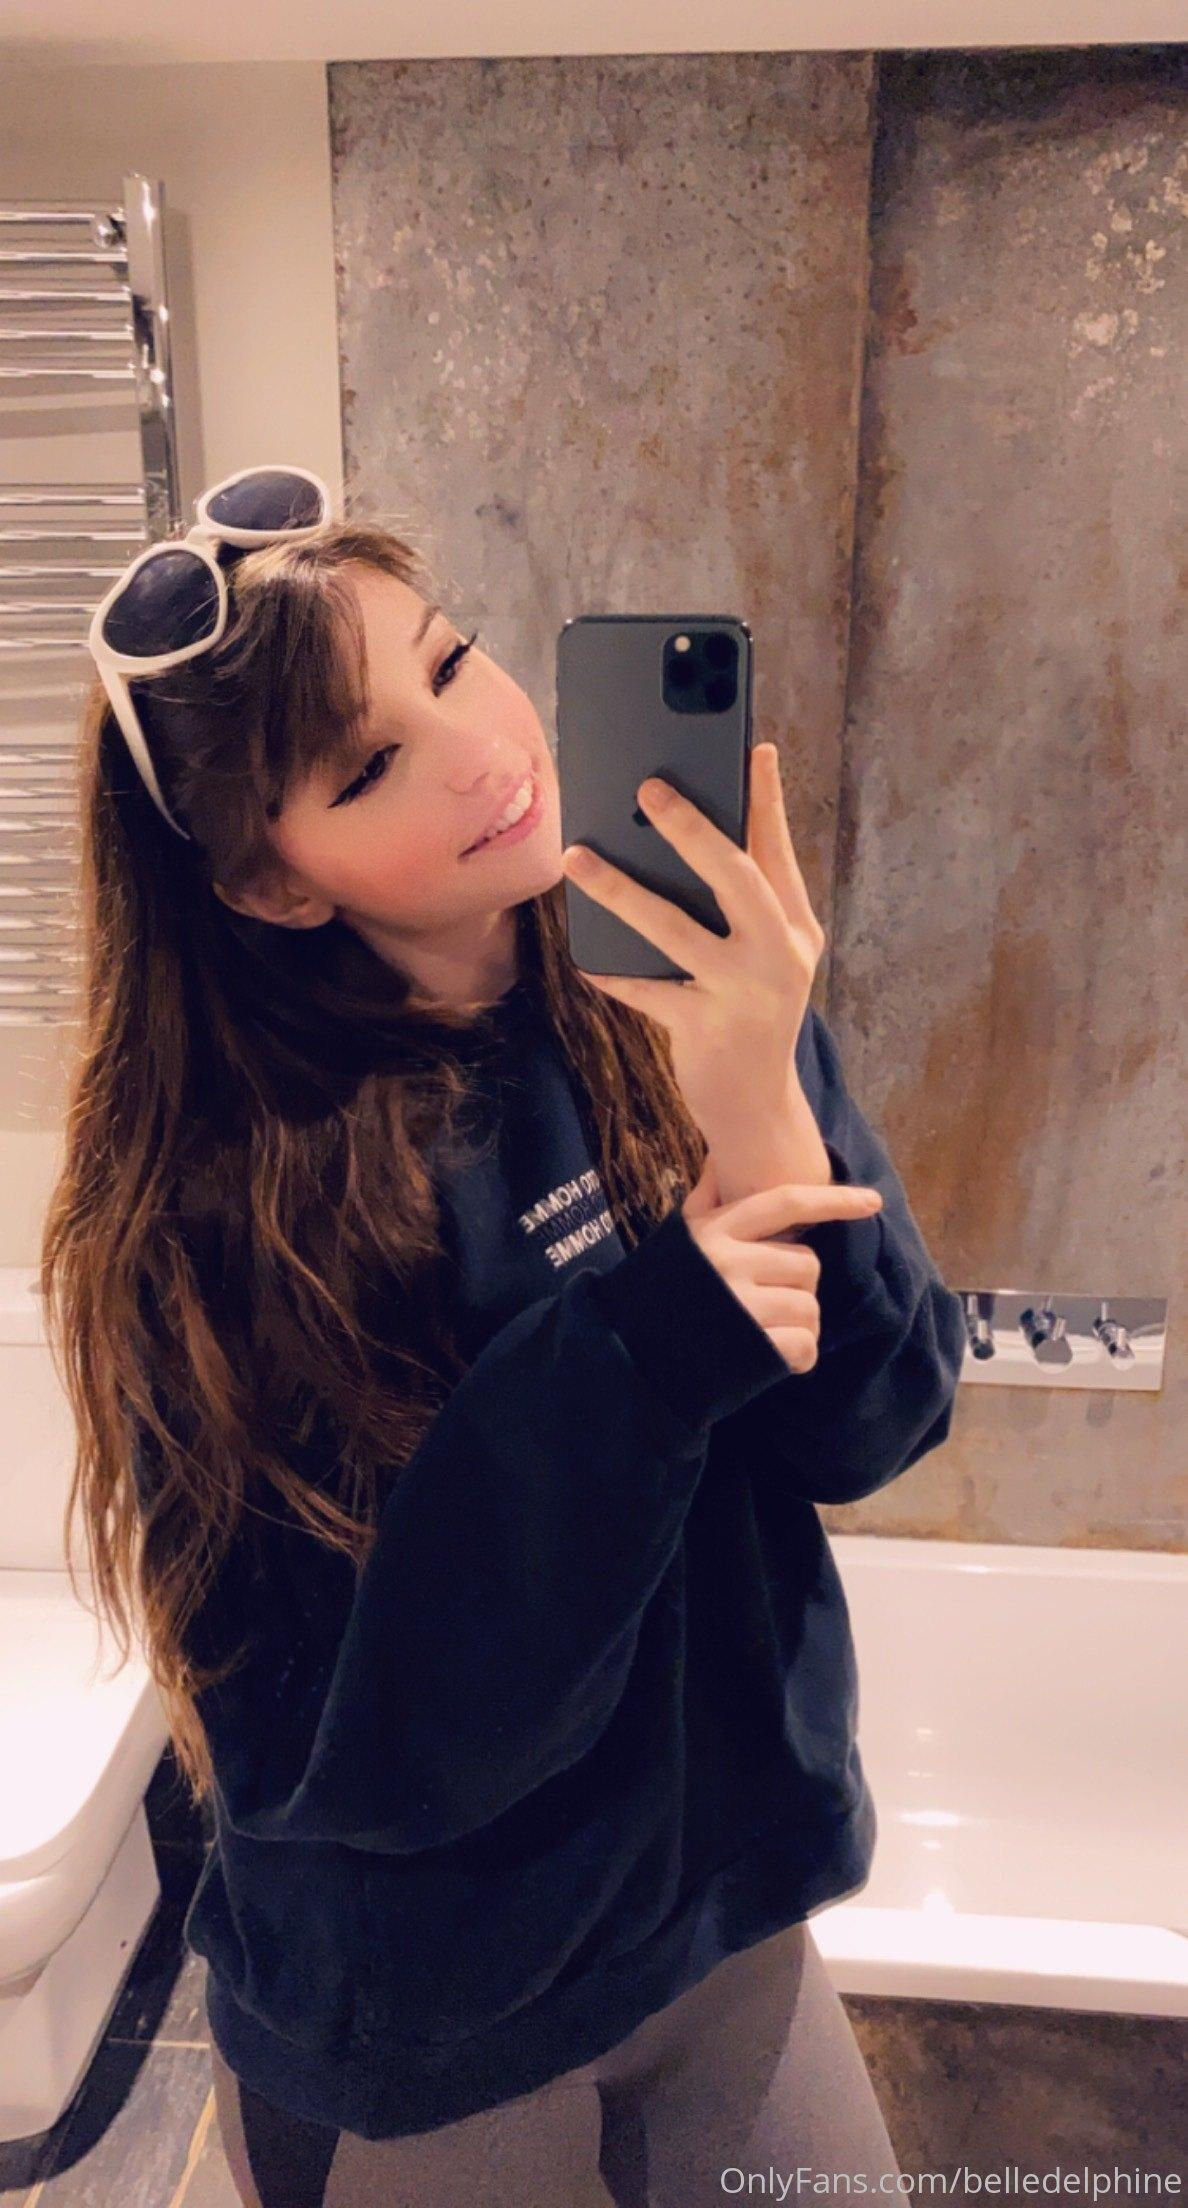 Belle Delphine Nude In Bath With Shoes Onlyfans Set Leaked 0074